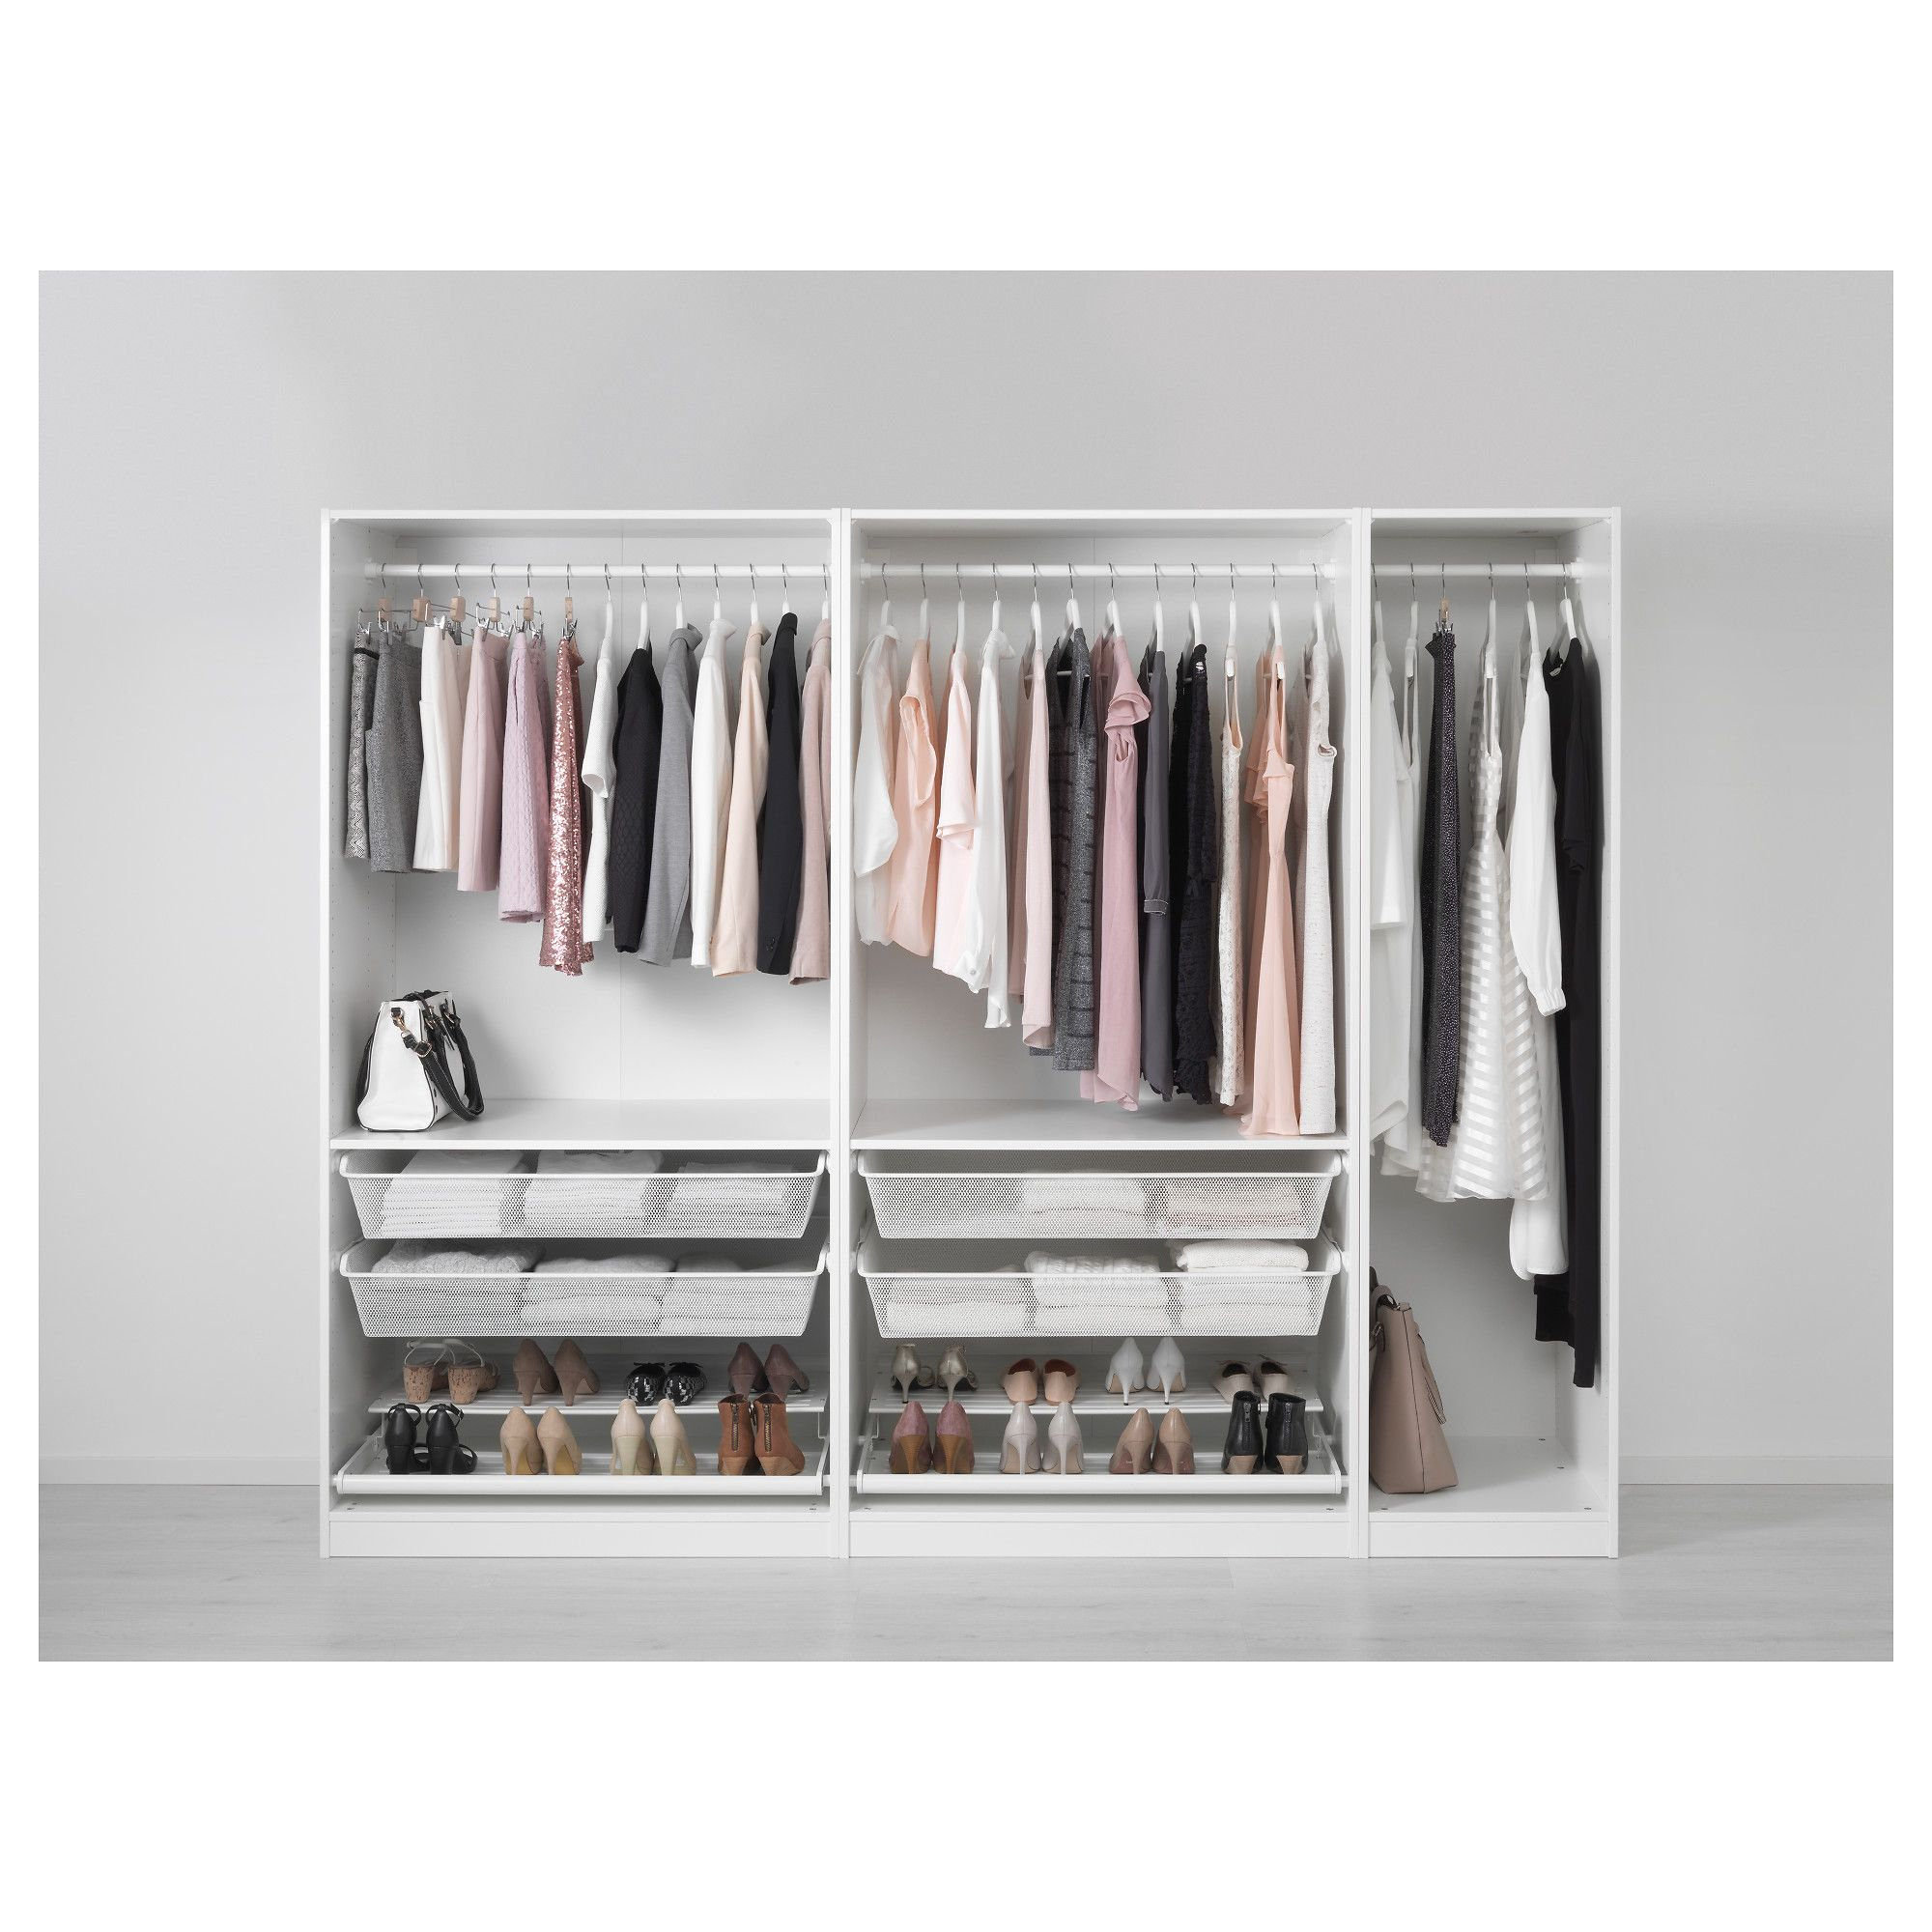 guarantee en gb brochure hasvik products terms year wardrobe white ikea wardrobes in fitted the cm about read pax spr